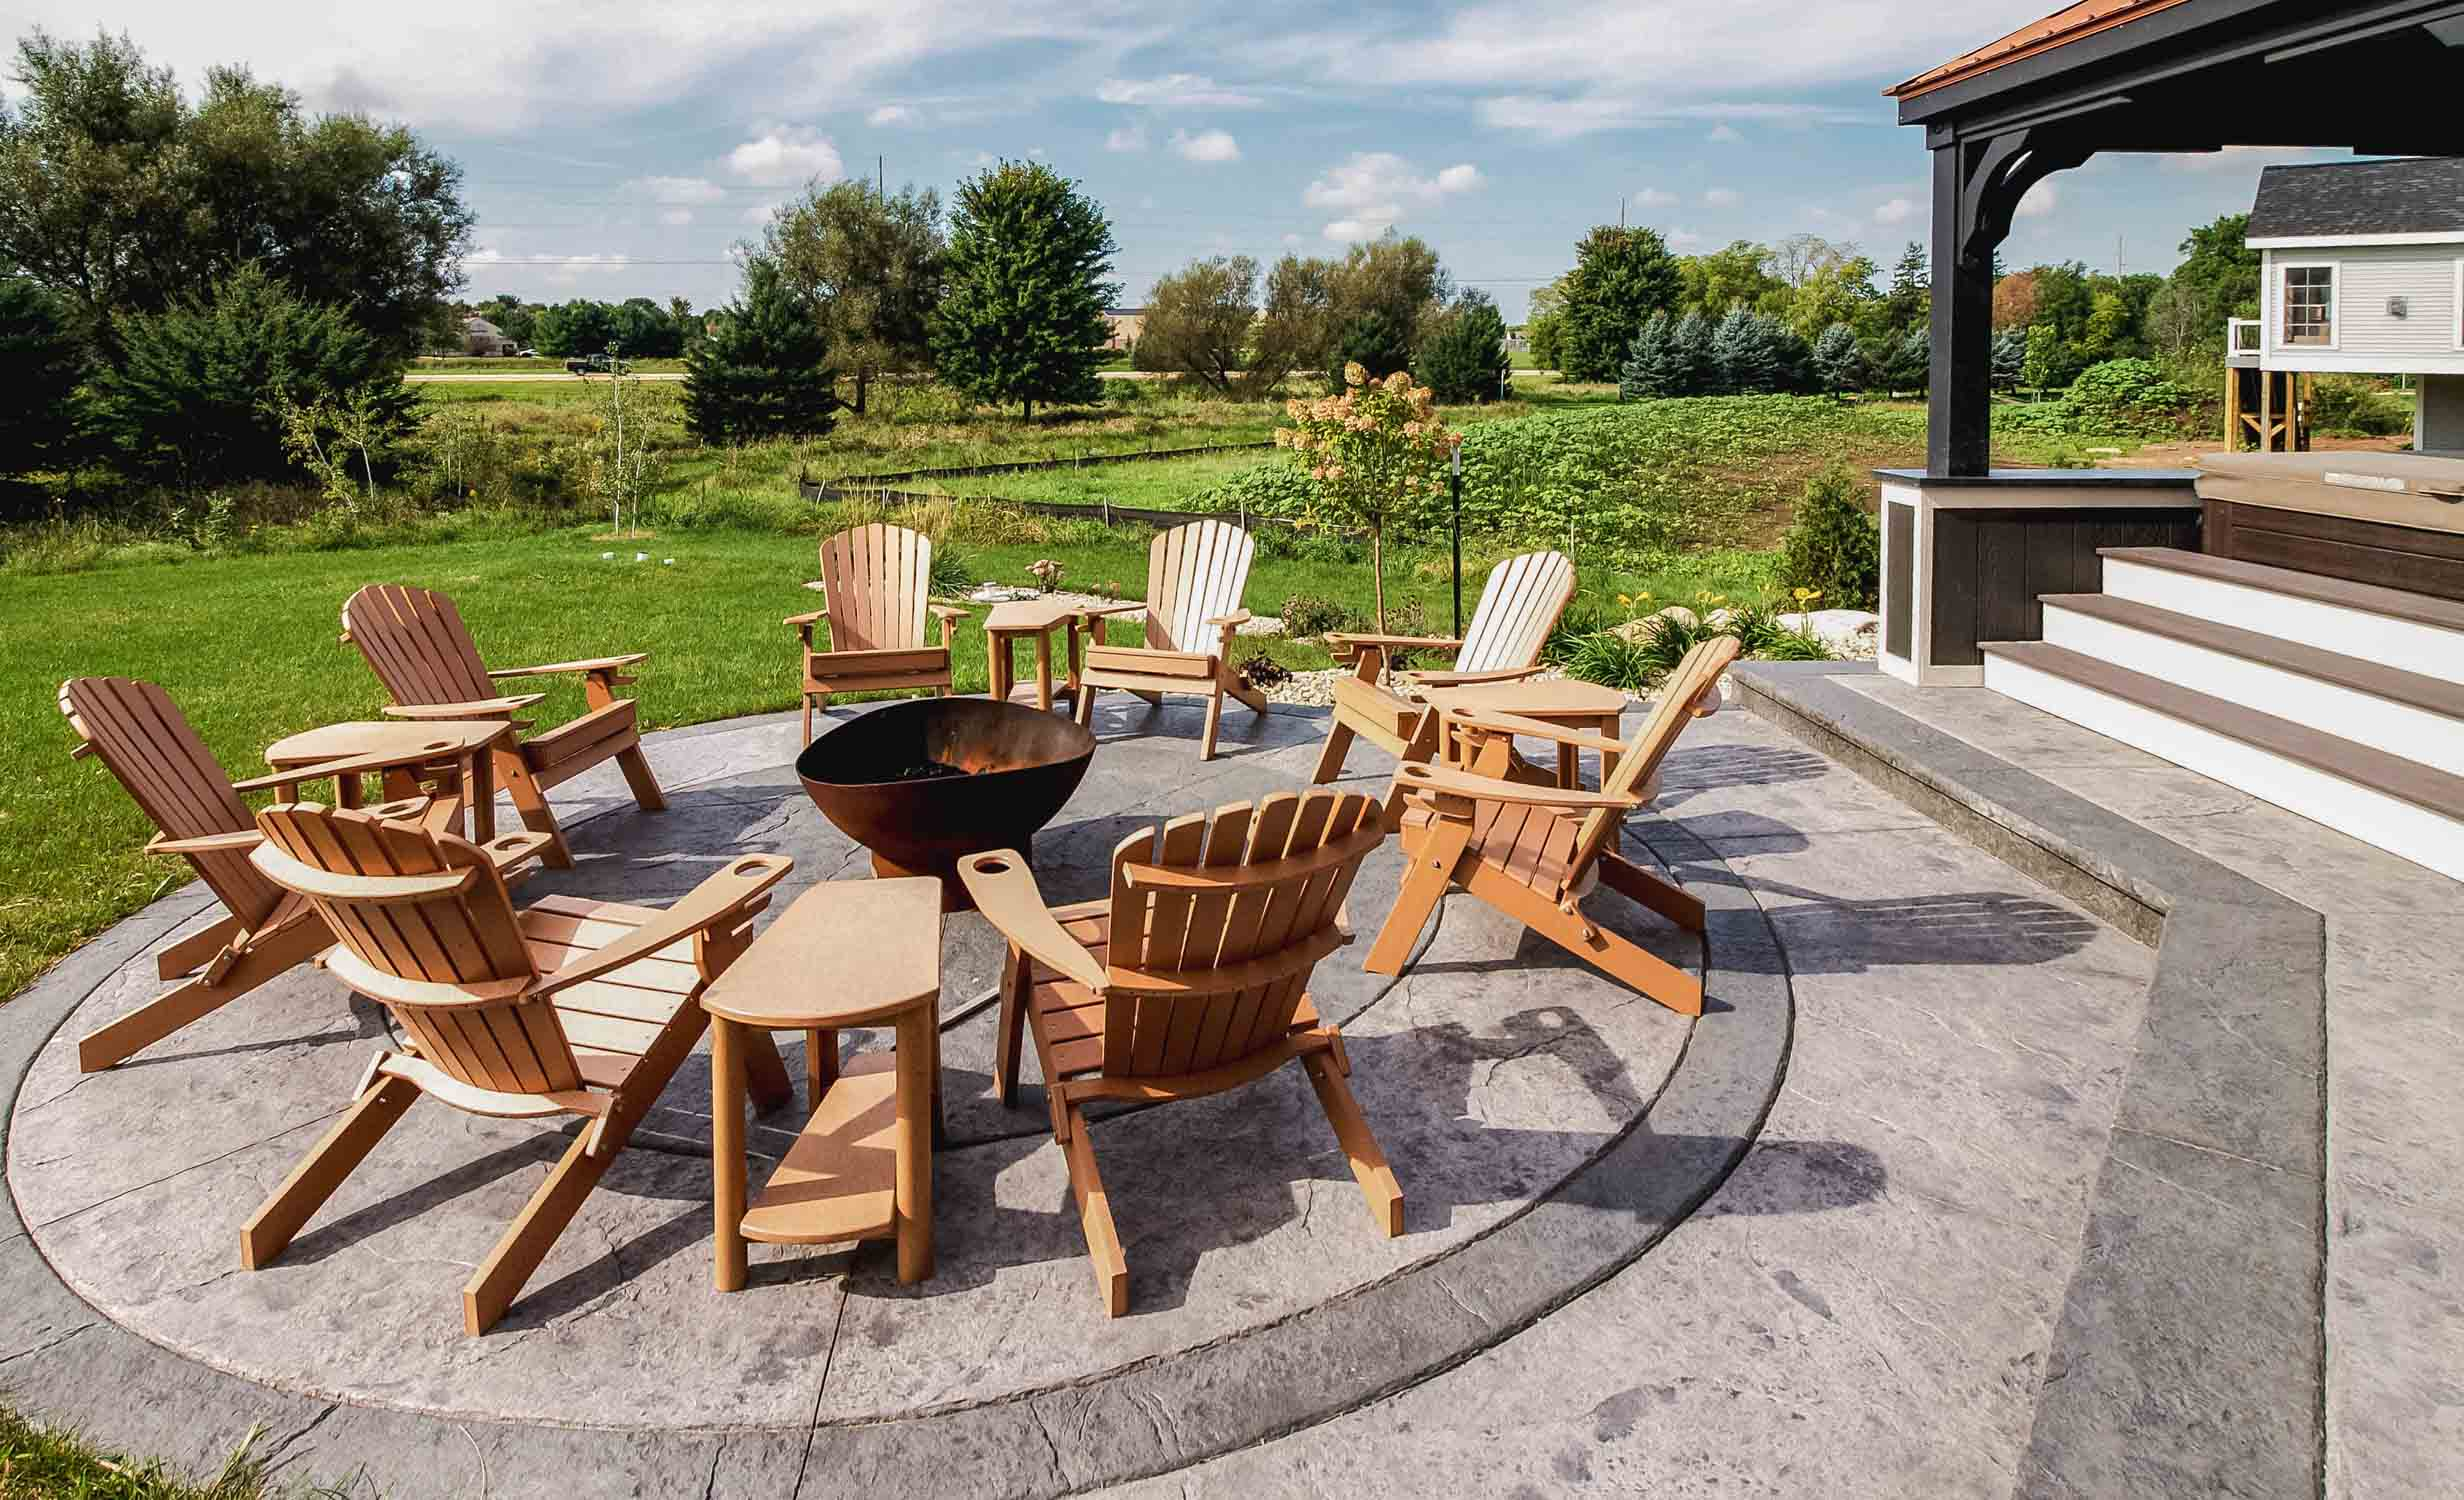 Patio Firepit with Adirondak Chairs